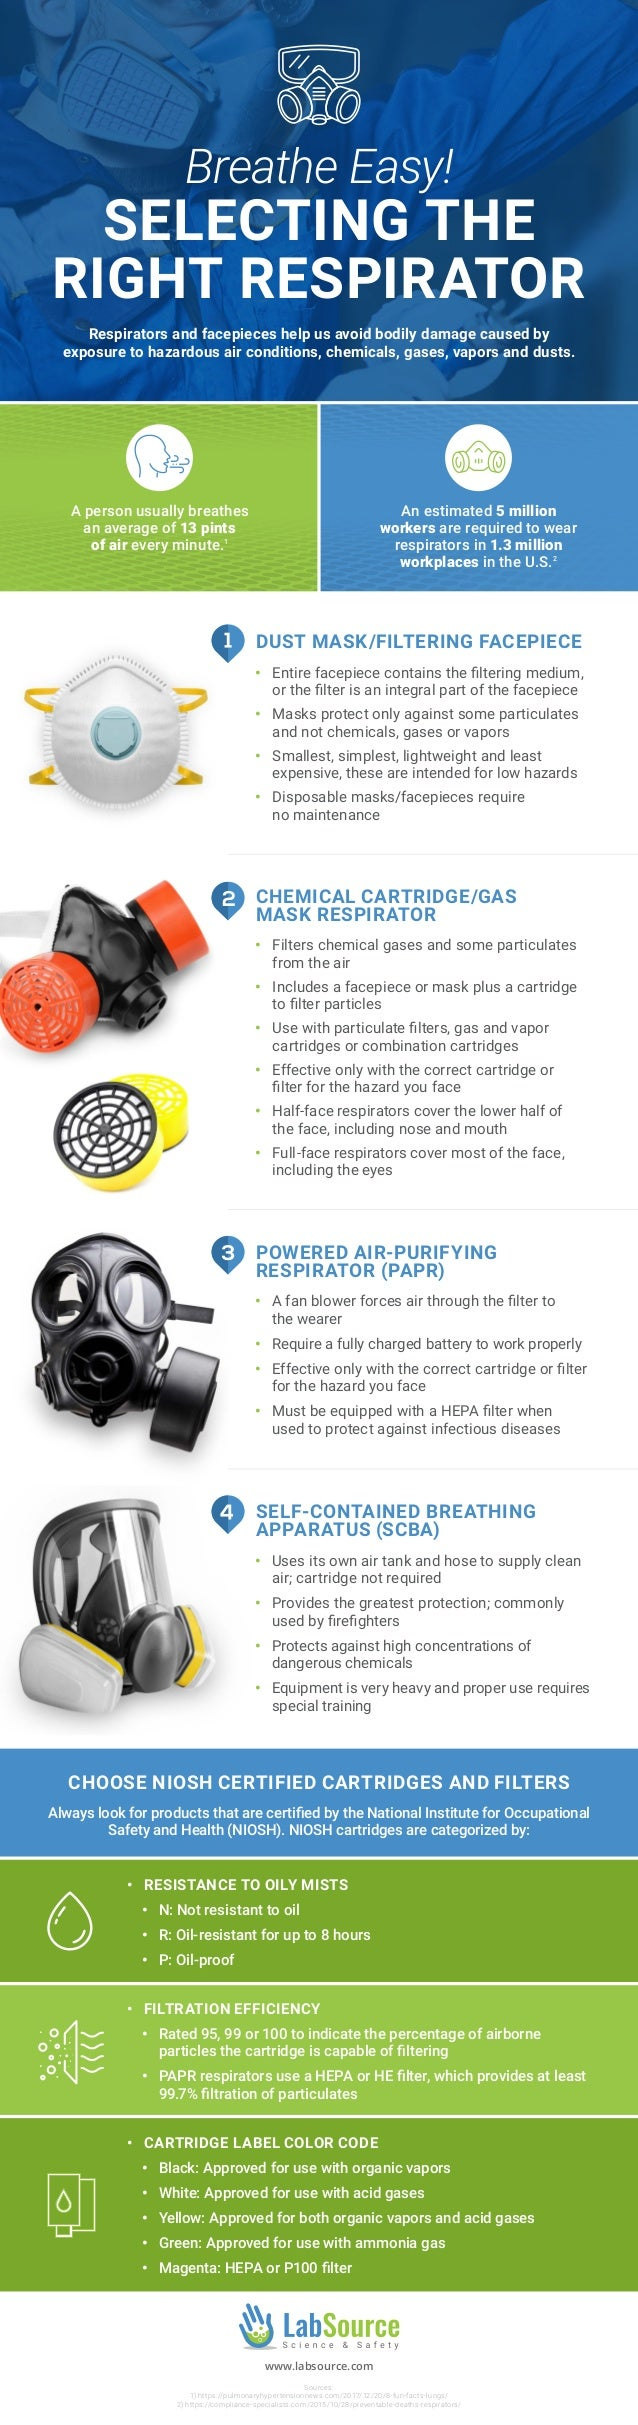 Respirators and facepieces help us avoid bodily damage caused by exposure to hazardous air conditions, chemicals, gases, v...